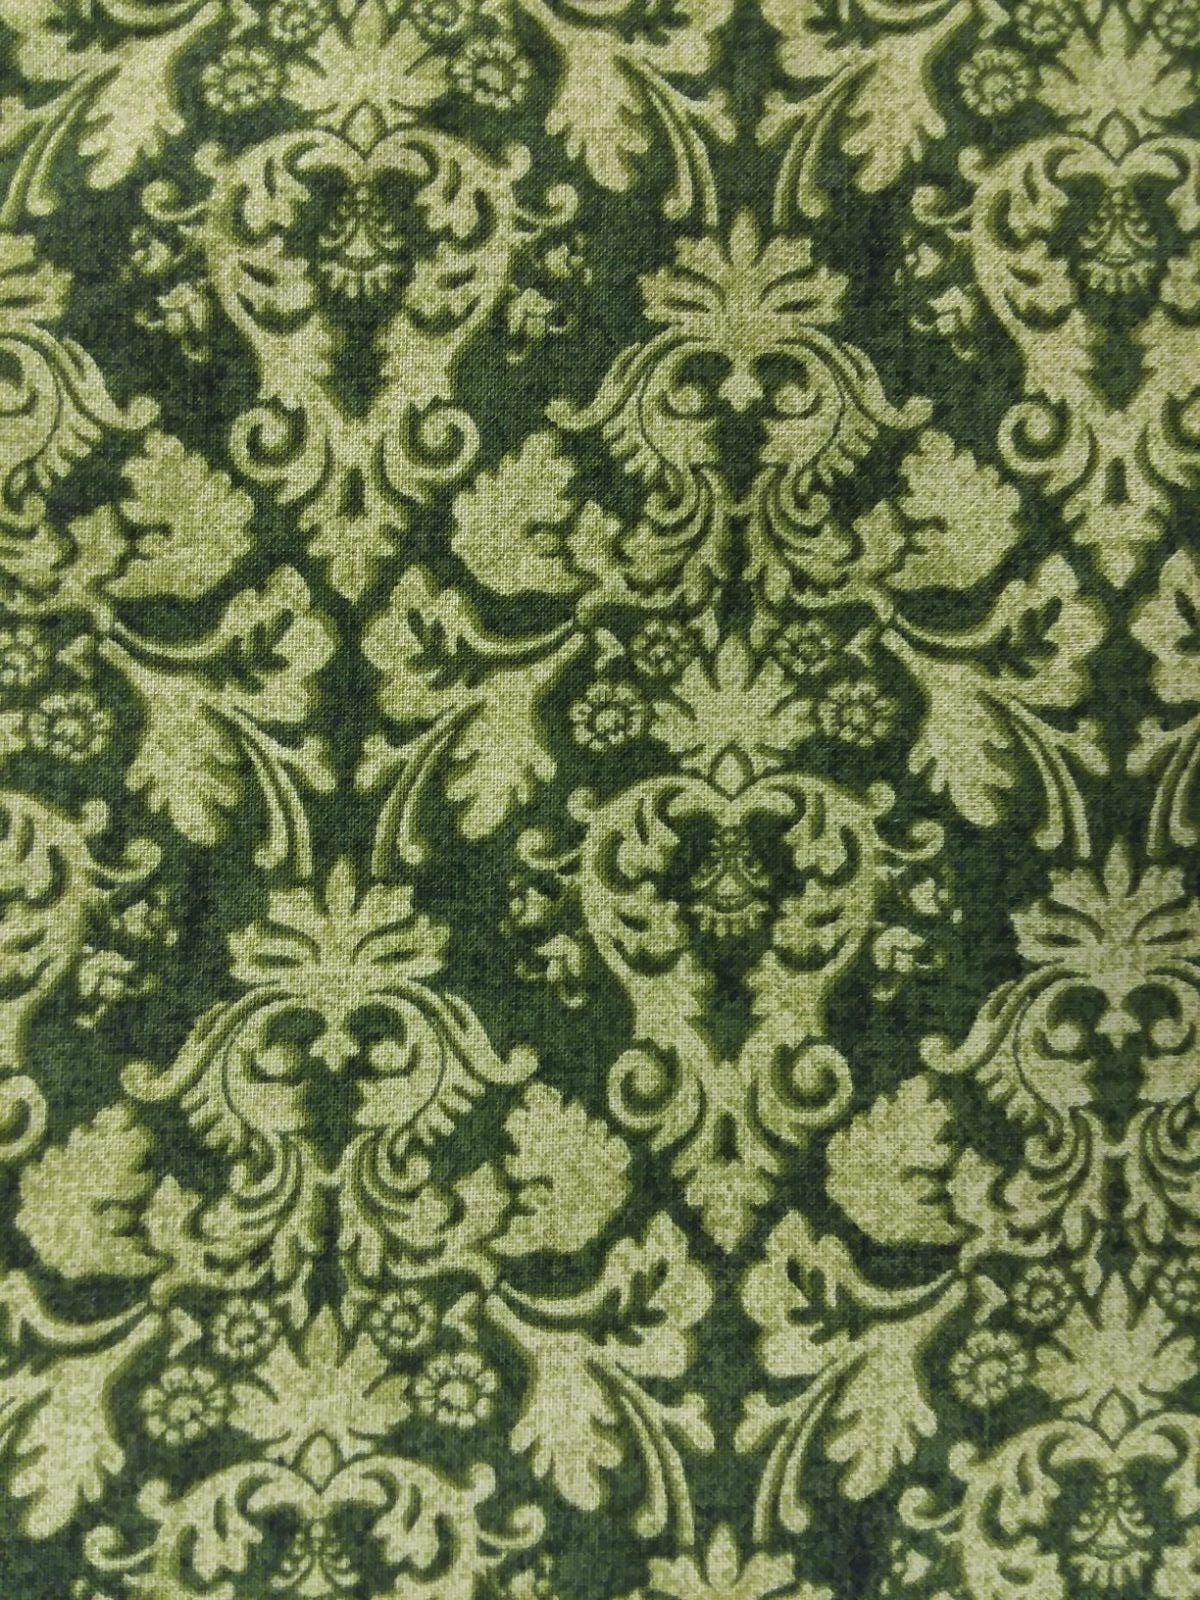 Hearth and Home - Green Damask